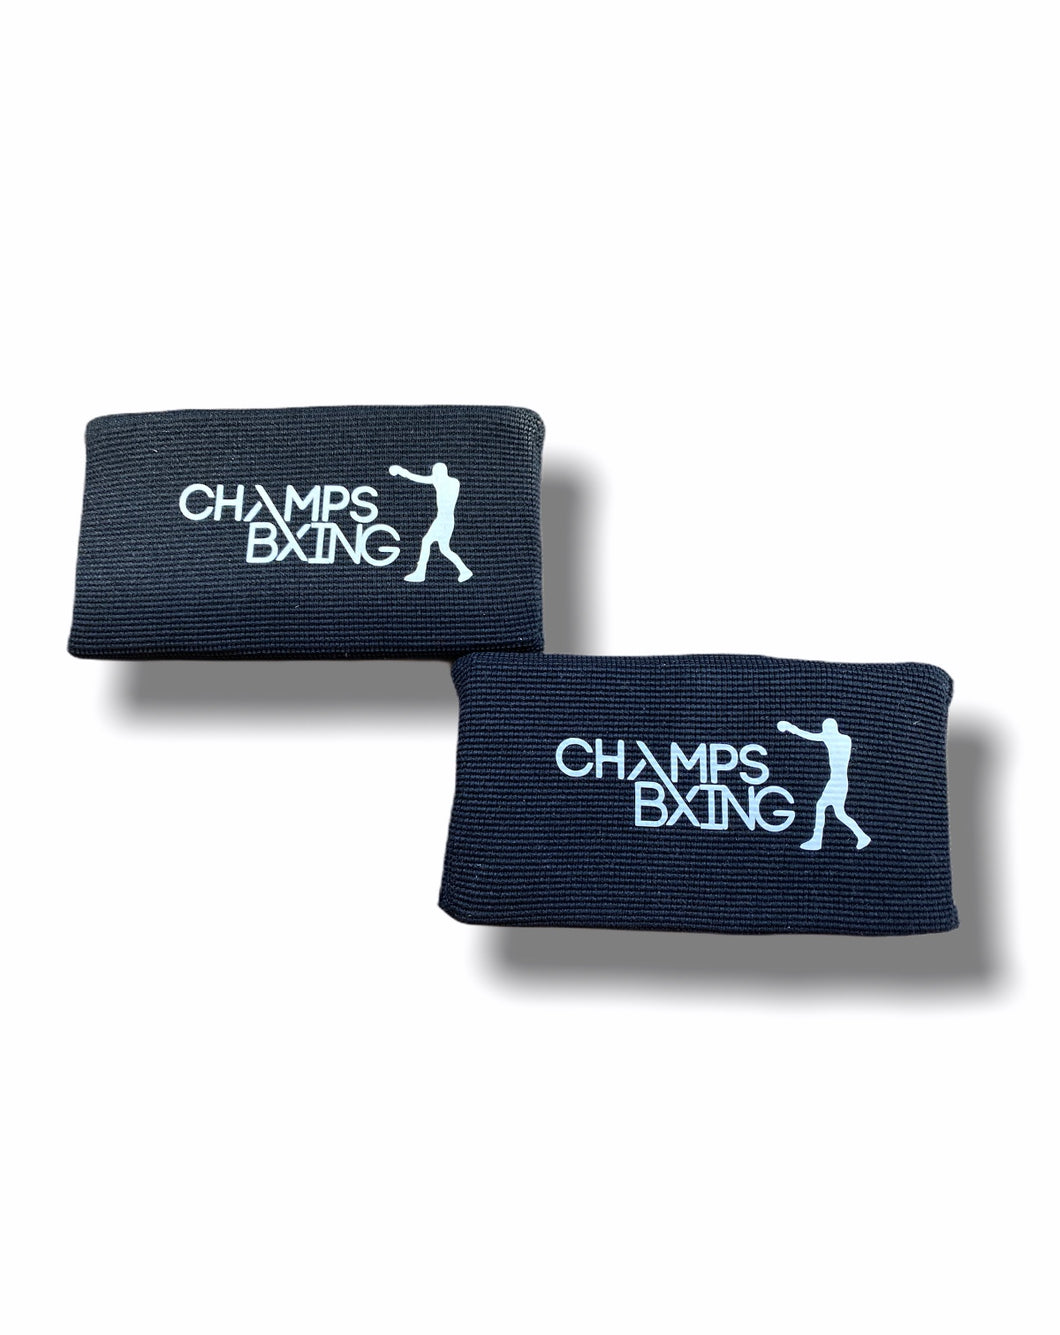 CHAMPS BXING-Gel Knuckle Protector pad